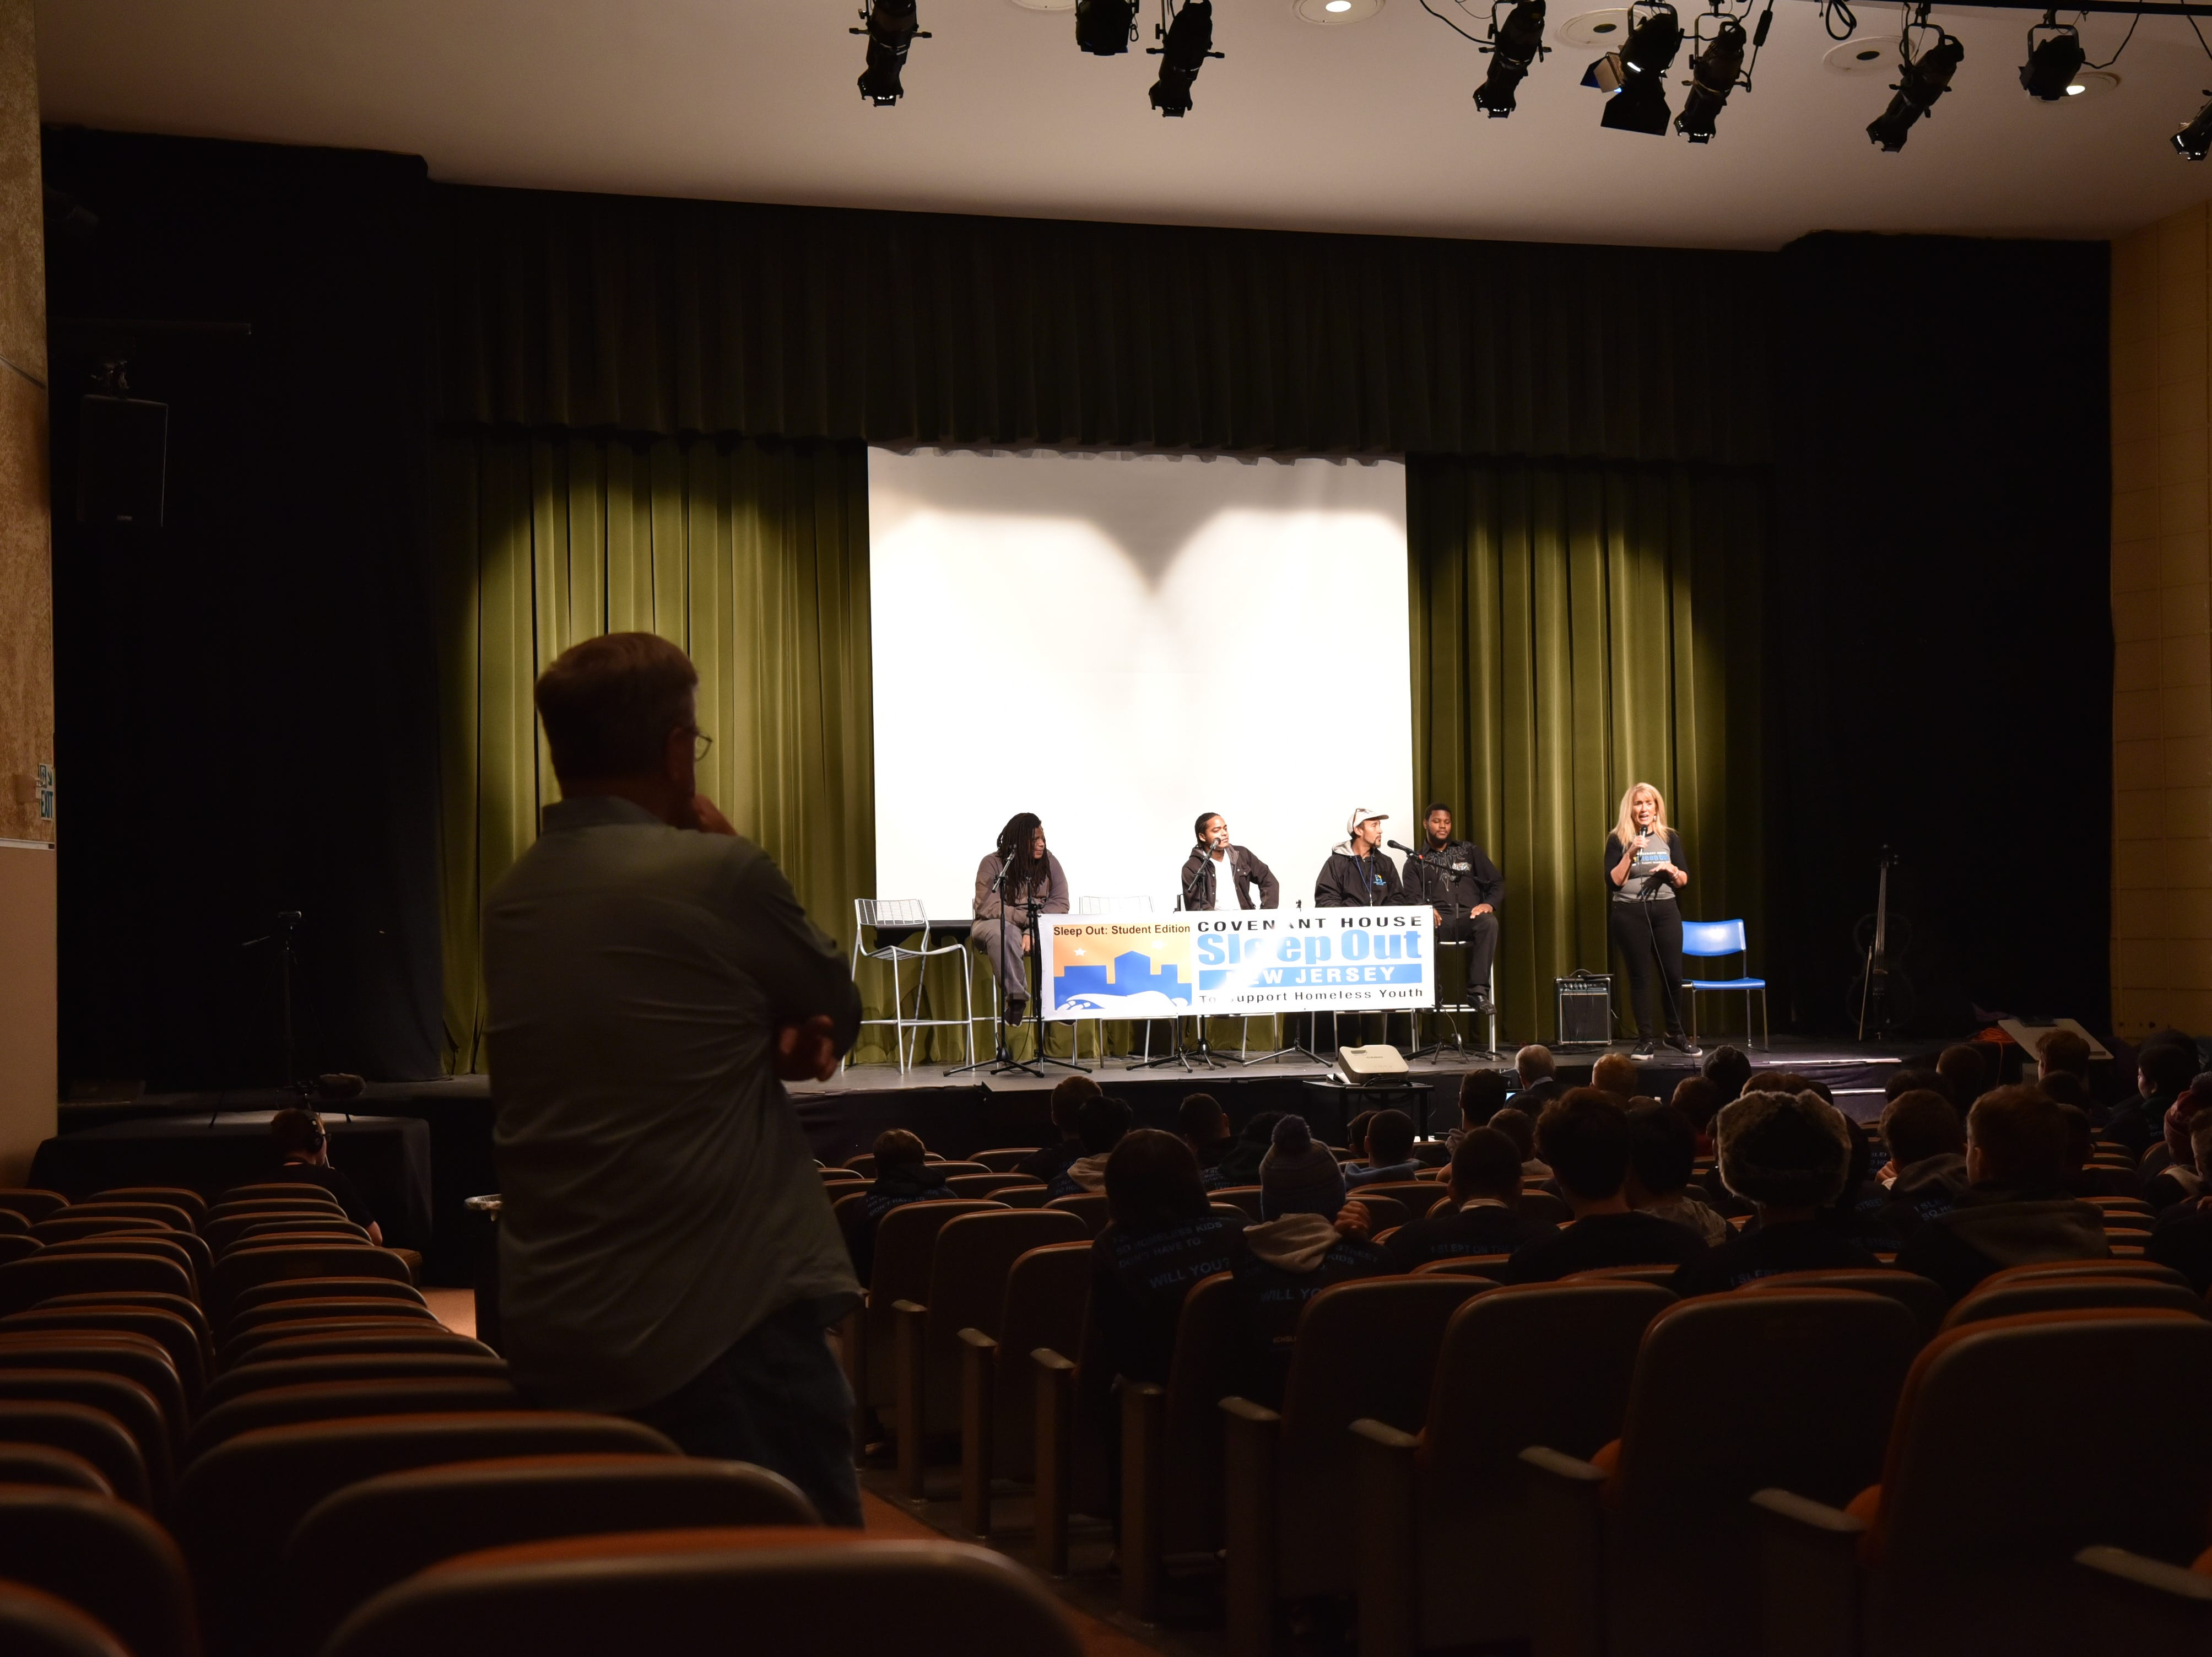 Before the sleepout, students had a presentation and guest speakers focusing on the homelessness issues.